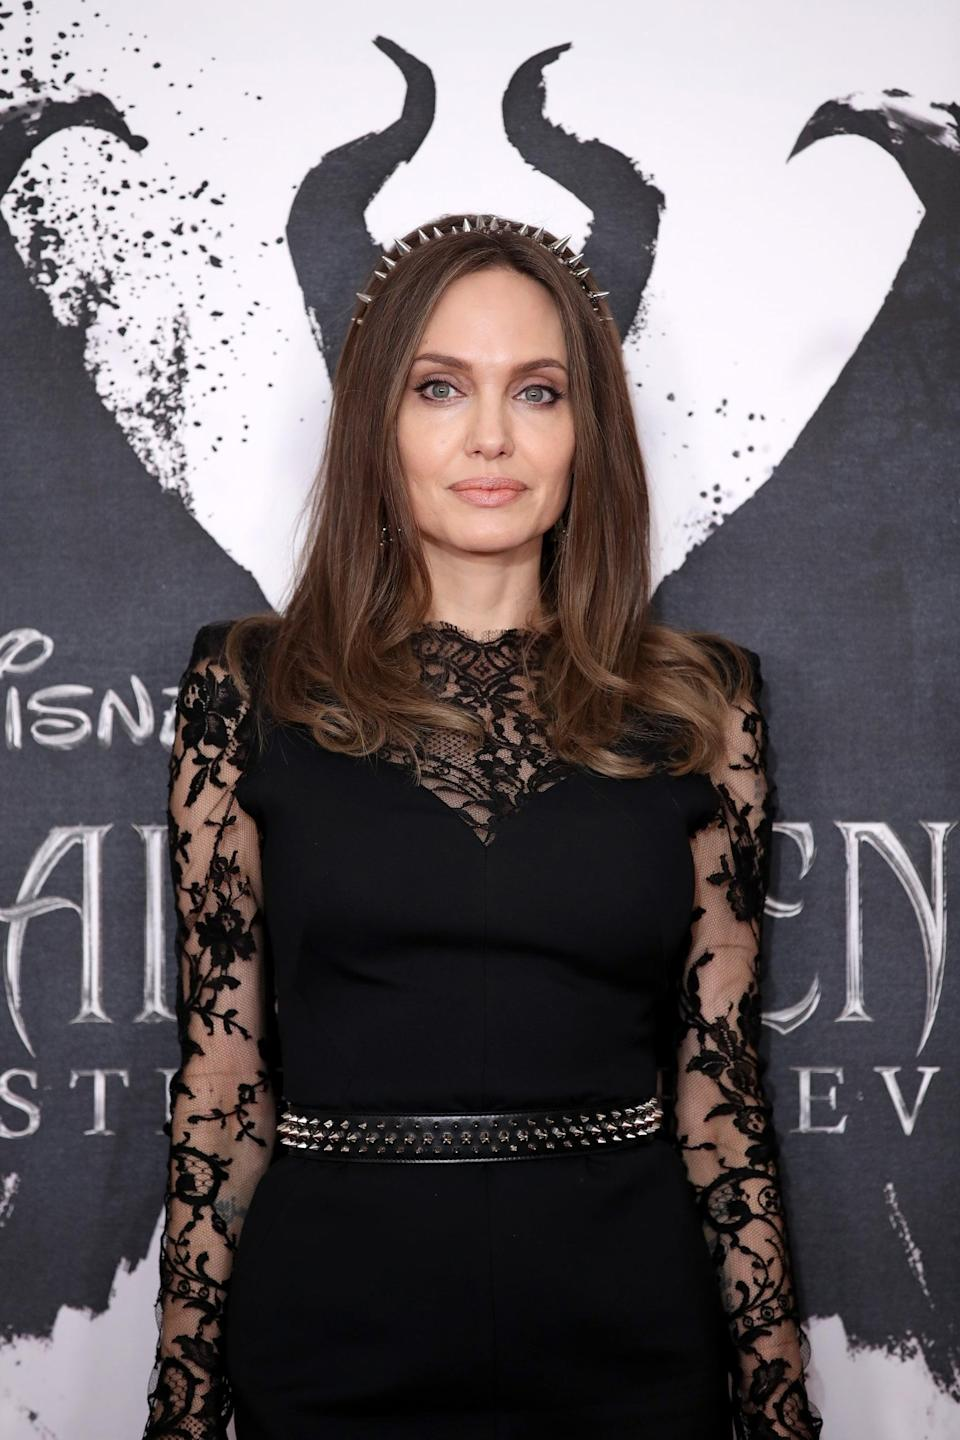 """<p>During the brief period of time that she was married to <a class=""""link rapid-noclick-resp"""" href=""""https://www.popsugar.com/Billy-Bob-Thornton"""" rel=""""nofollow noopener"""" target=""""_blank"""" data-ylk=""""slk:Billy Bob Thornton"""">Billy Bob Thornton</a>, <a class=""""link rapid-noclick-resp"""" href=""""https://www.popsugar.com/Angelina-Jolie"""" rel=""""nofollow noopener"""" target=""""_blank"""" data-ylk=""""slk:Angelina Jolie"""">Angelina Jolie</a> got a tattoo of the actor's first name above a dragon on her shoulder. To the surprise of no one, she had the ink removed when the two divorced in 2003.</p>"""